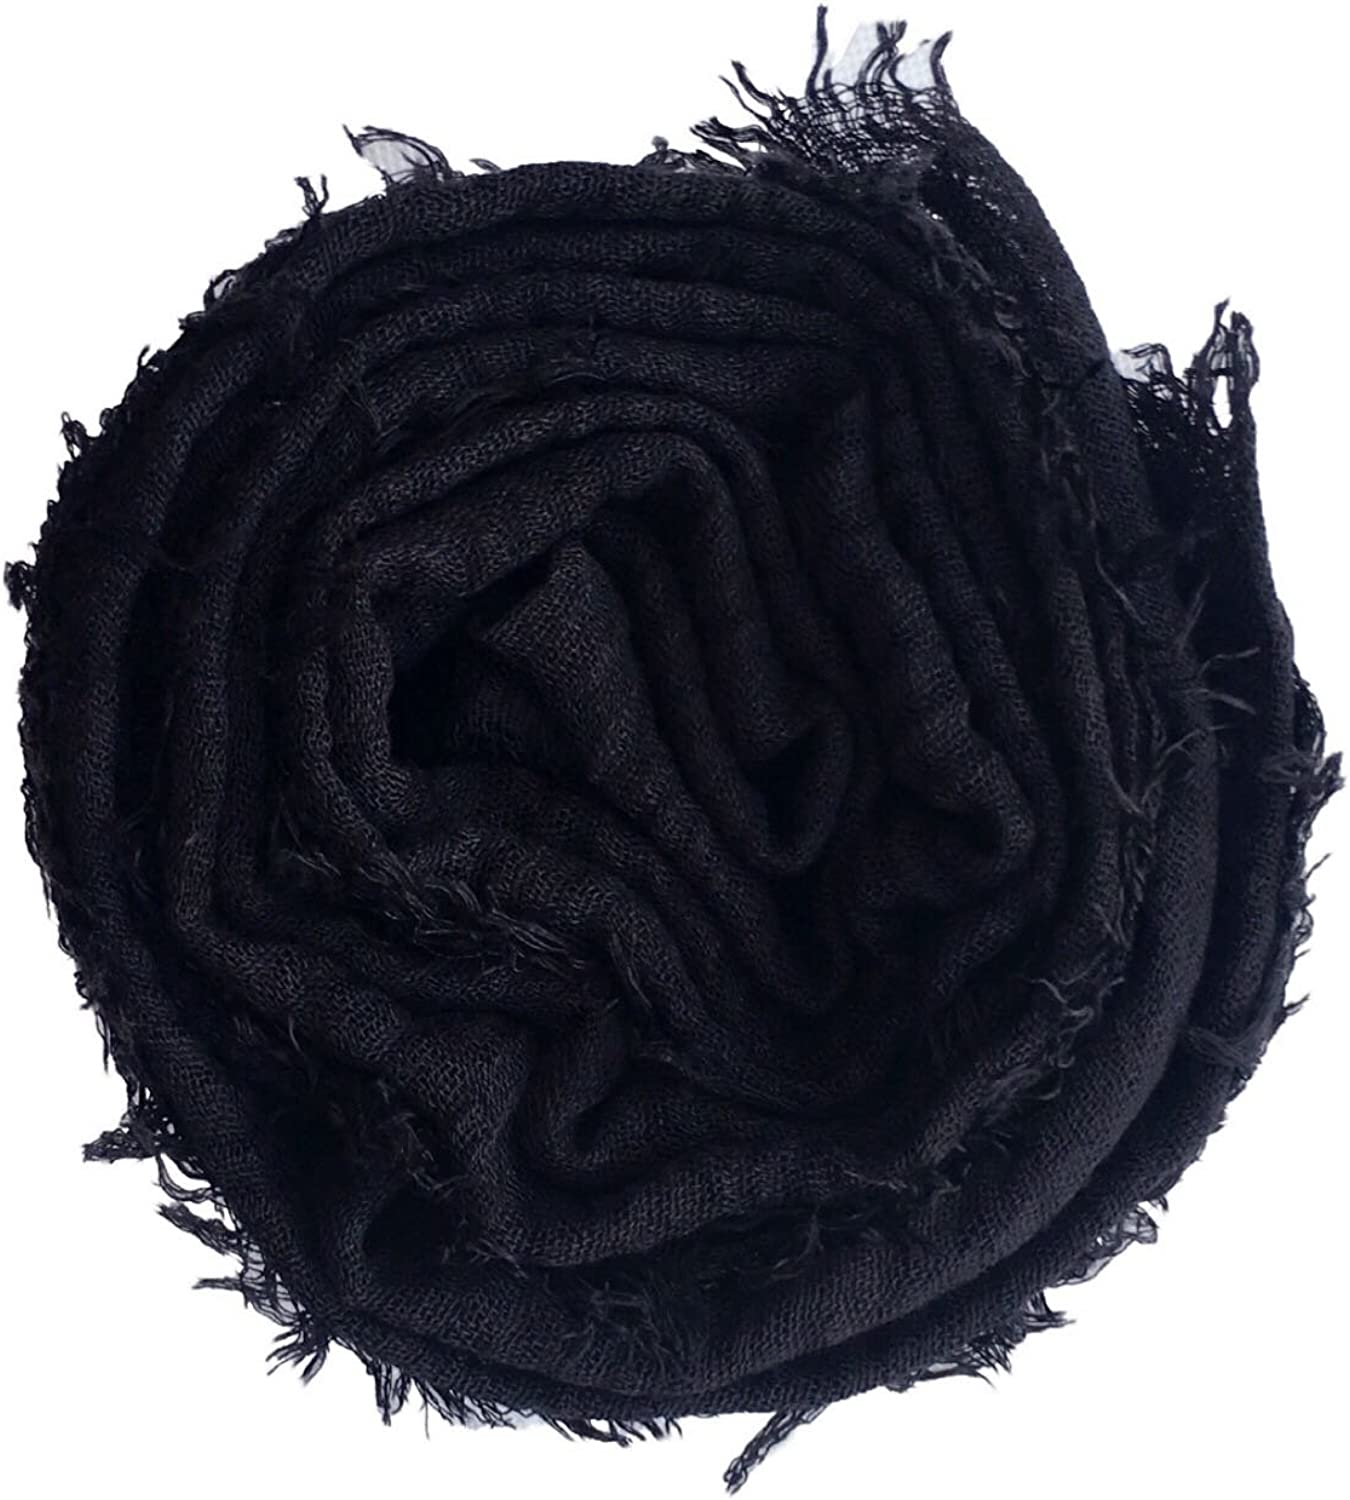 Crimp Frayed Edges Crinkle Maxi Scarf Cotton Hijab Scarves UK